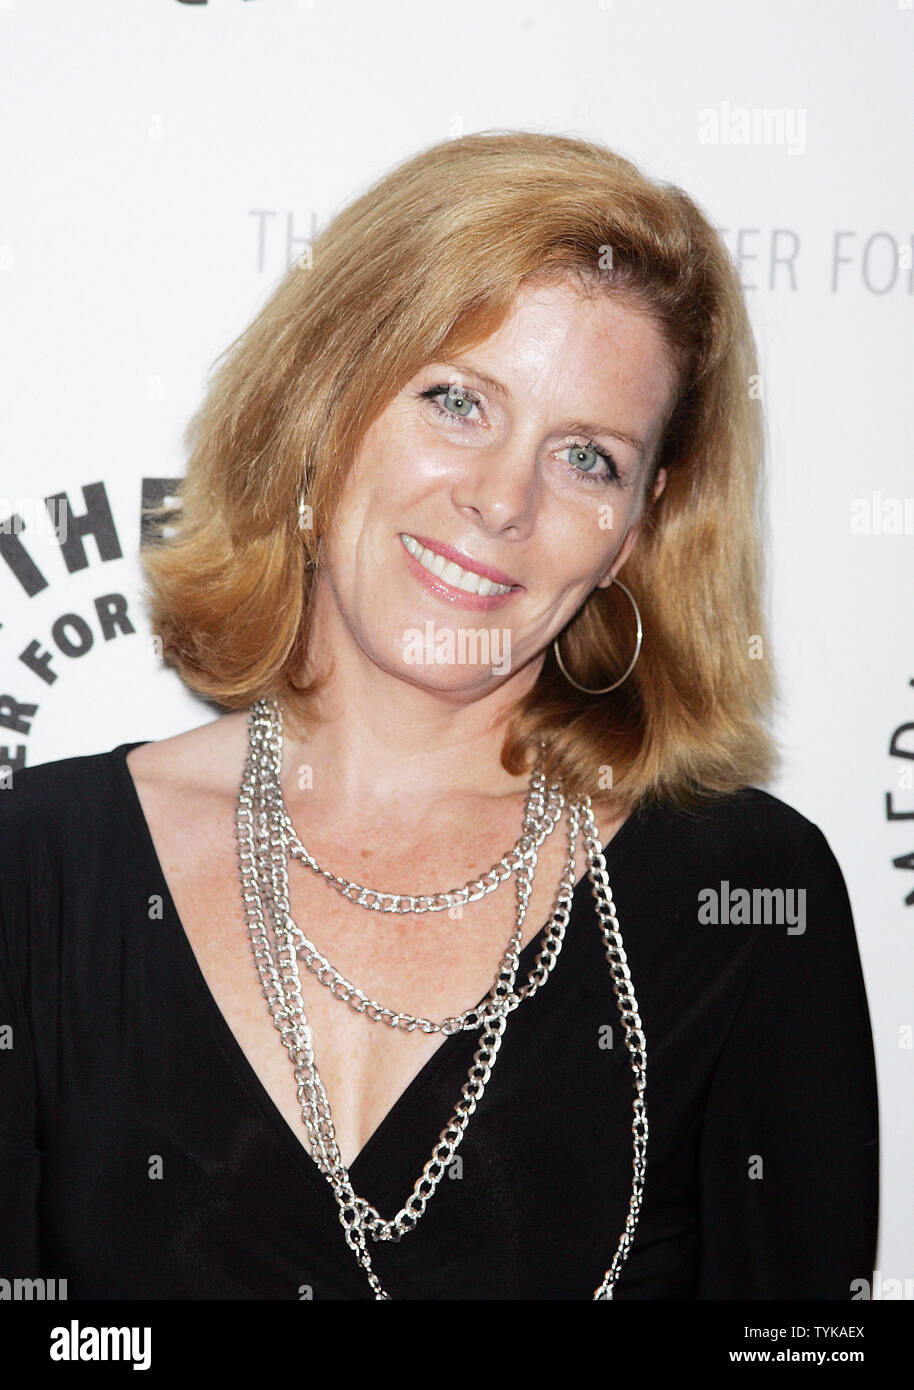 Liz Keifer arrives for the Goodbye to 'Guiding Light', 72 Years Young event at the Paley Center for Media in New York on August 19, 2009.       UPI Photo/Laura Cavanaugh - Stock Image